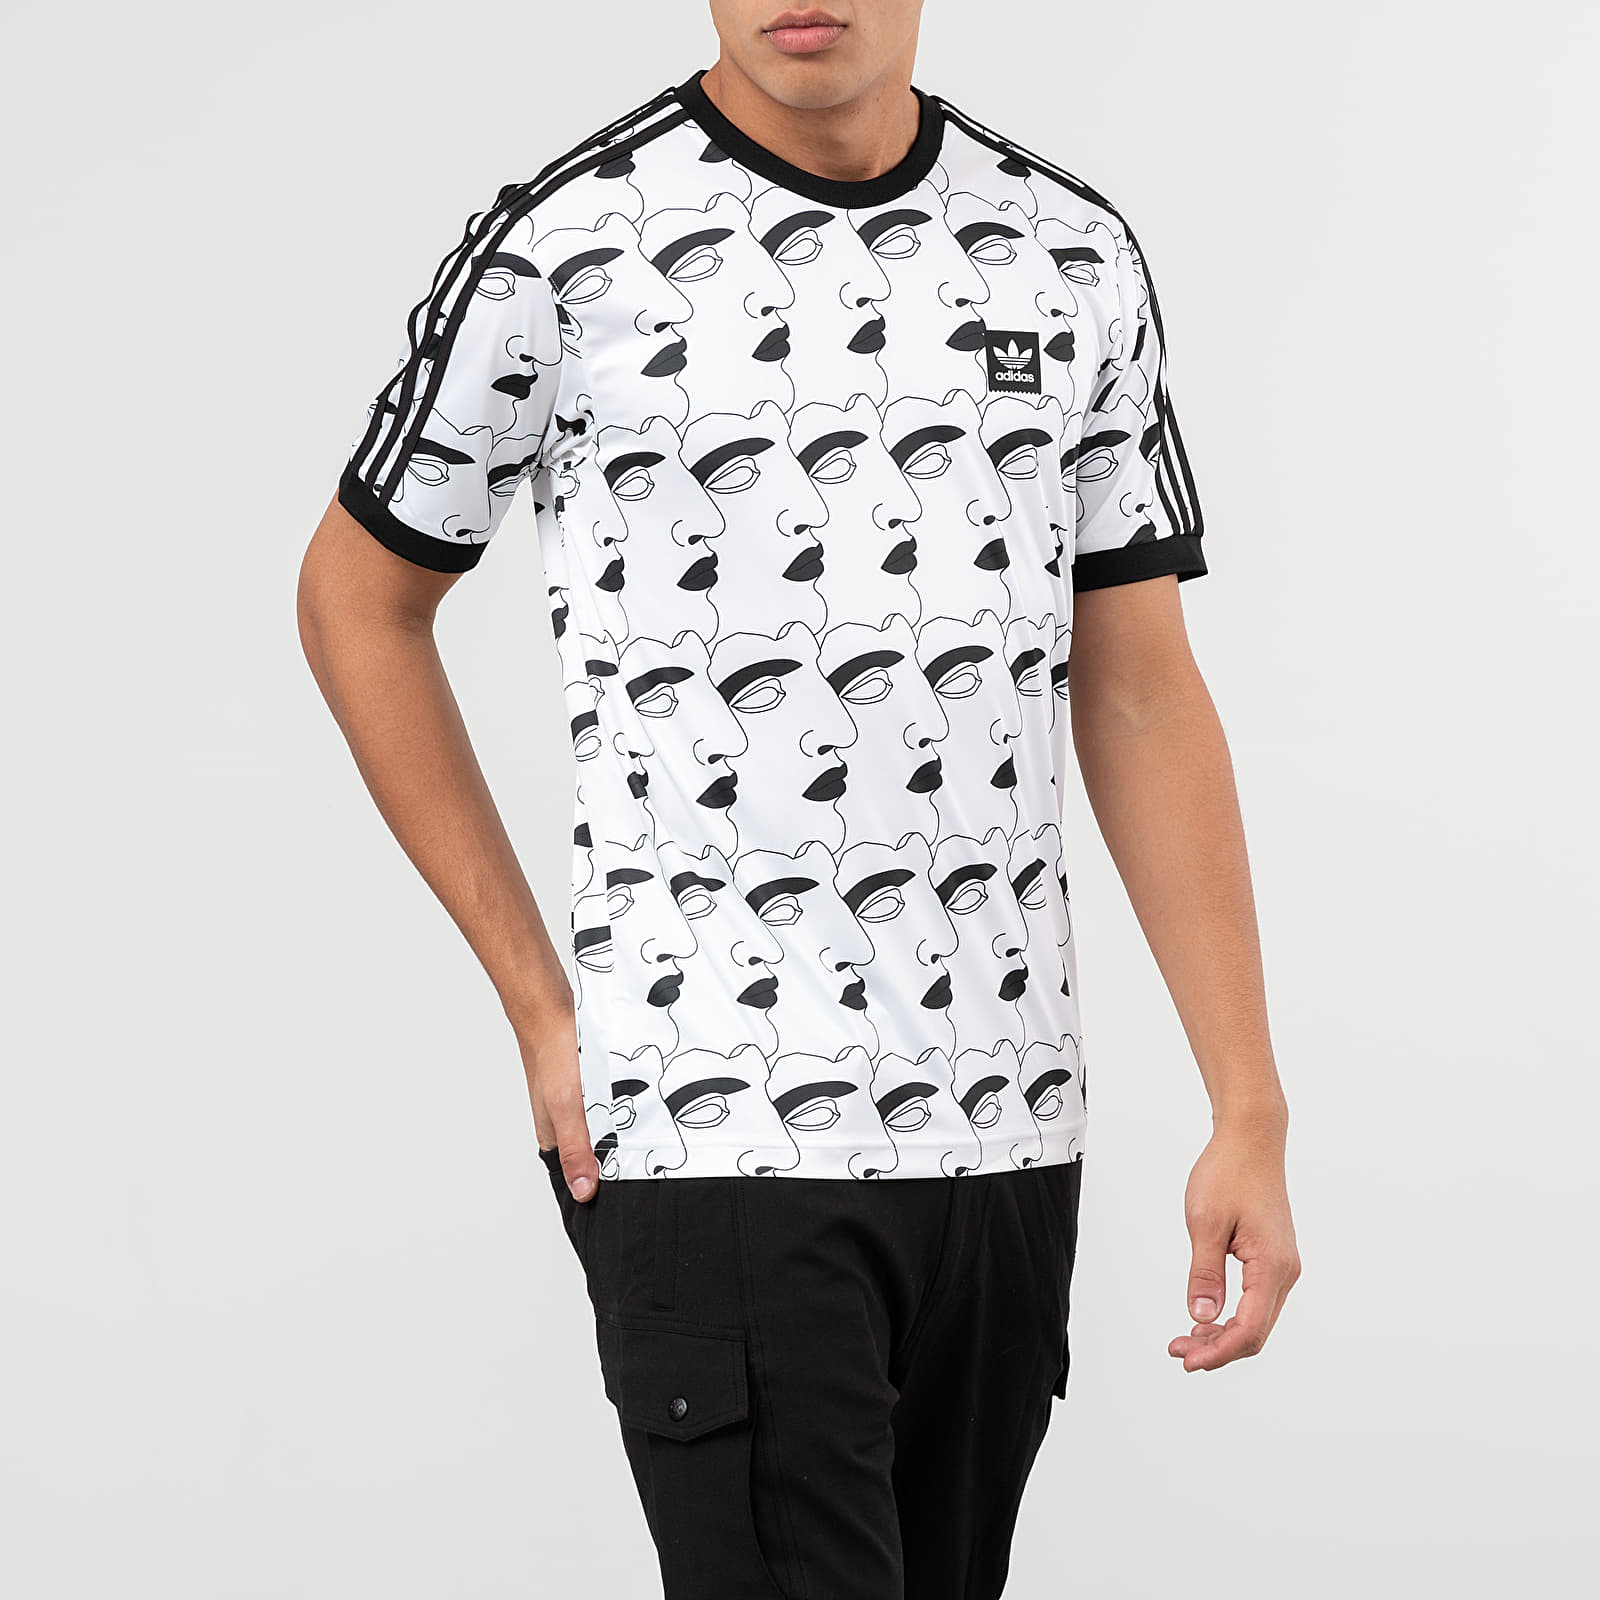 adidas Promoted Jersey Tee